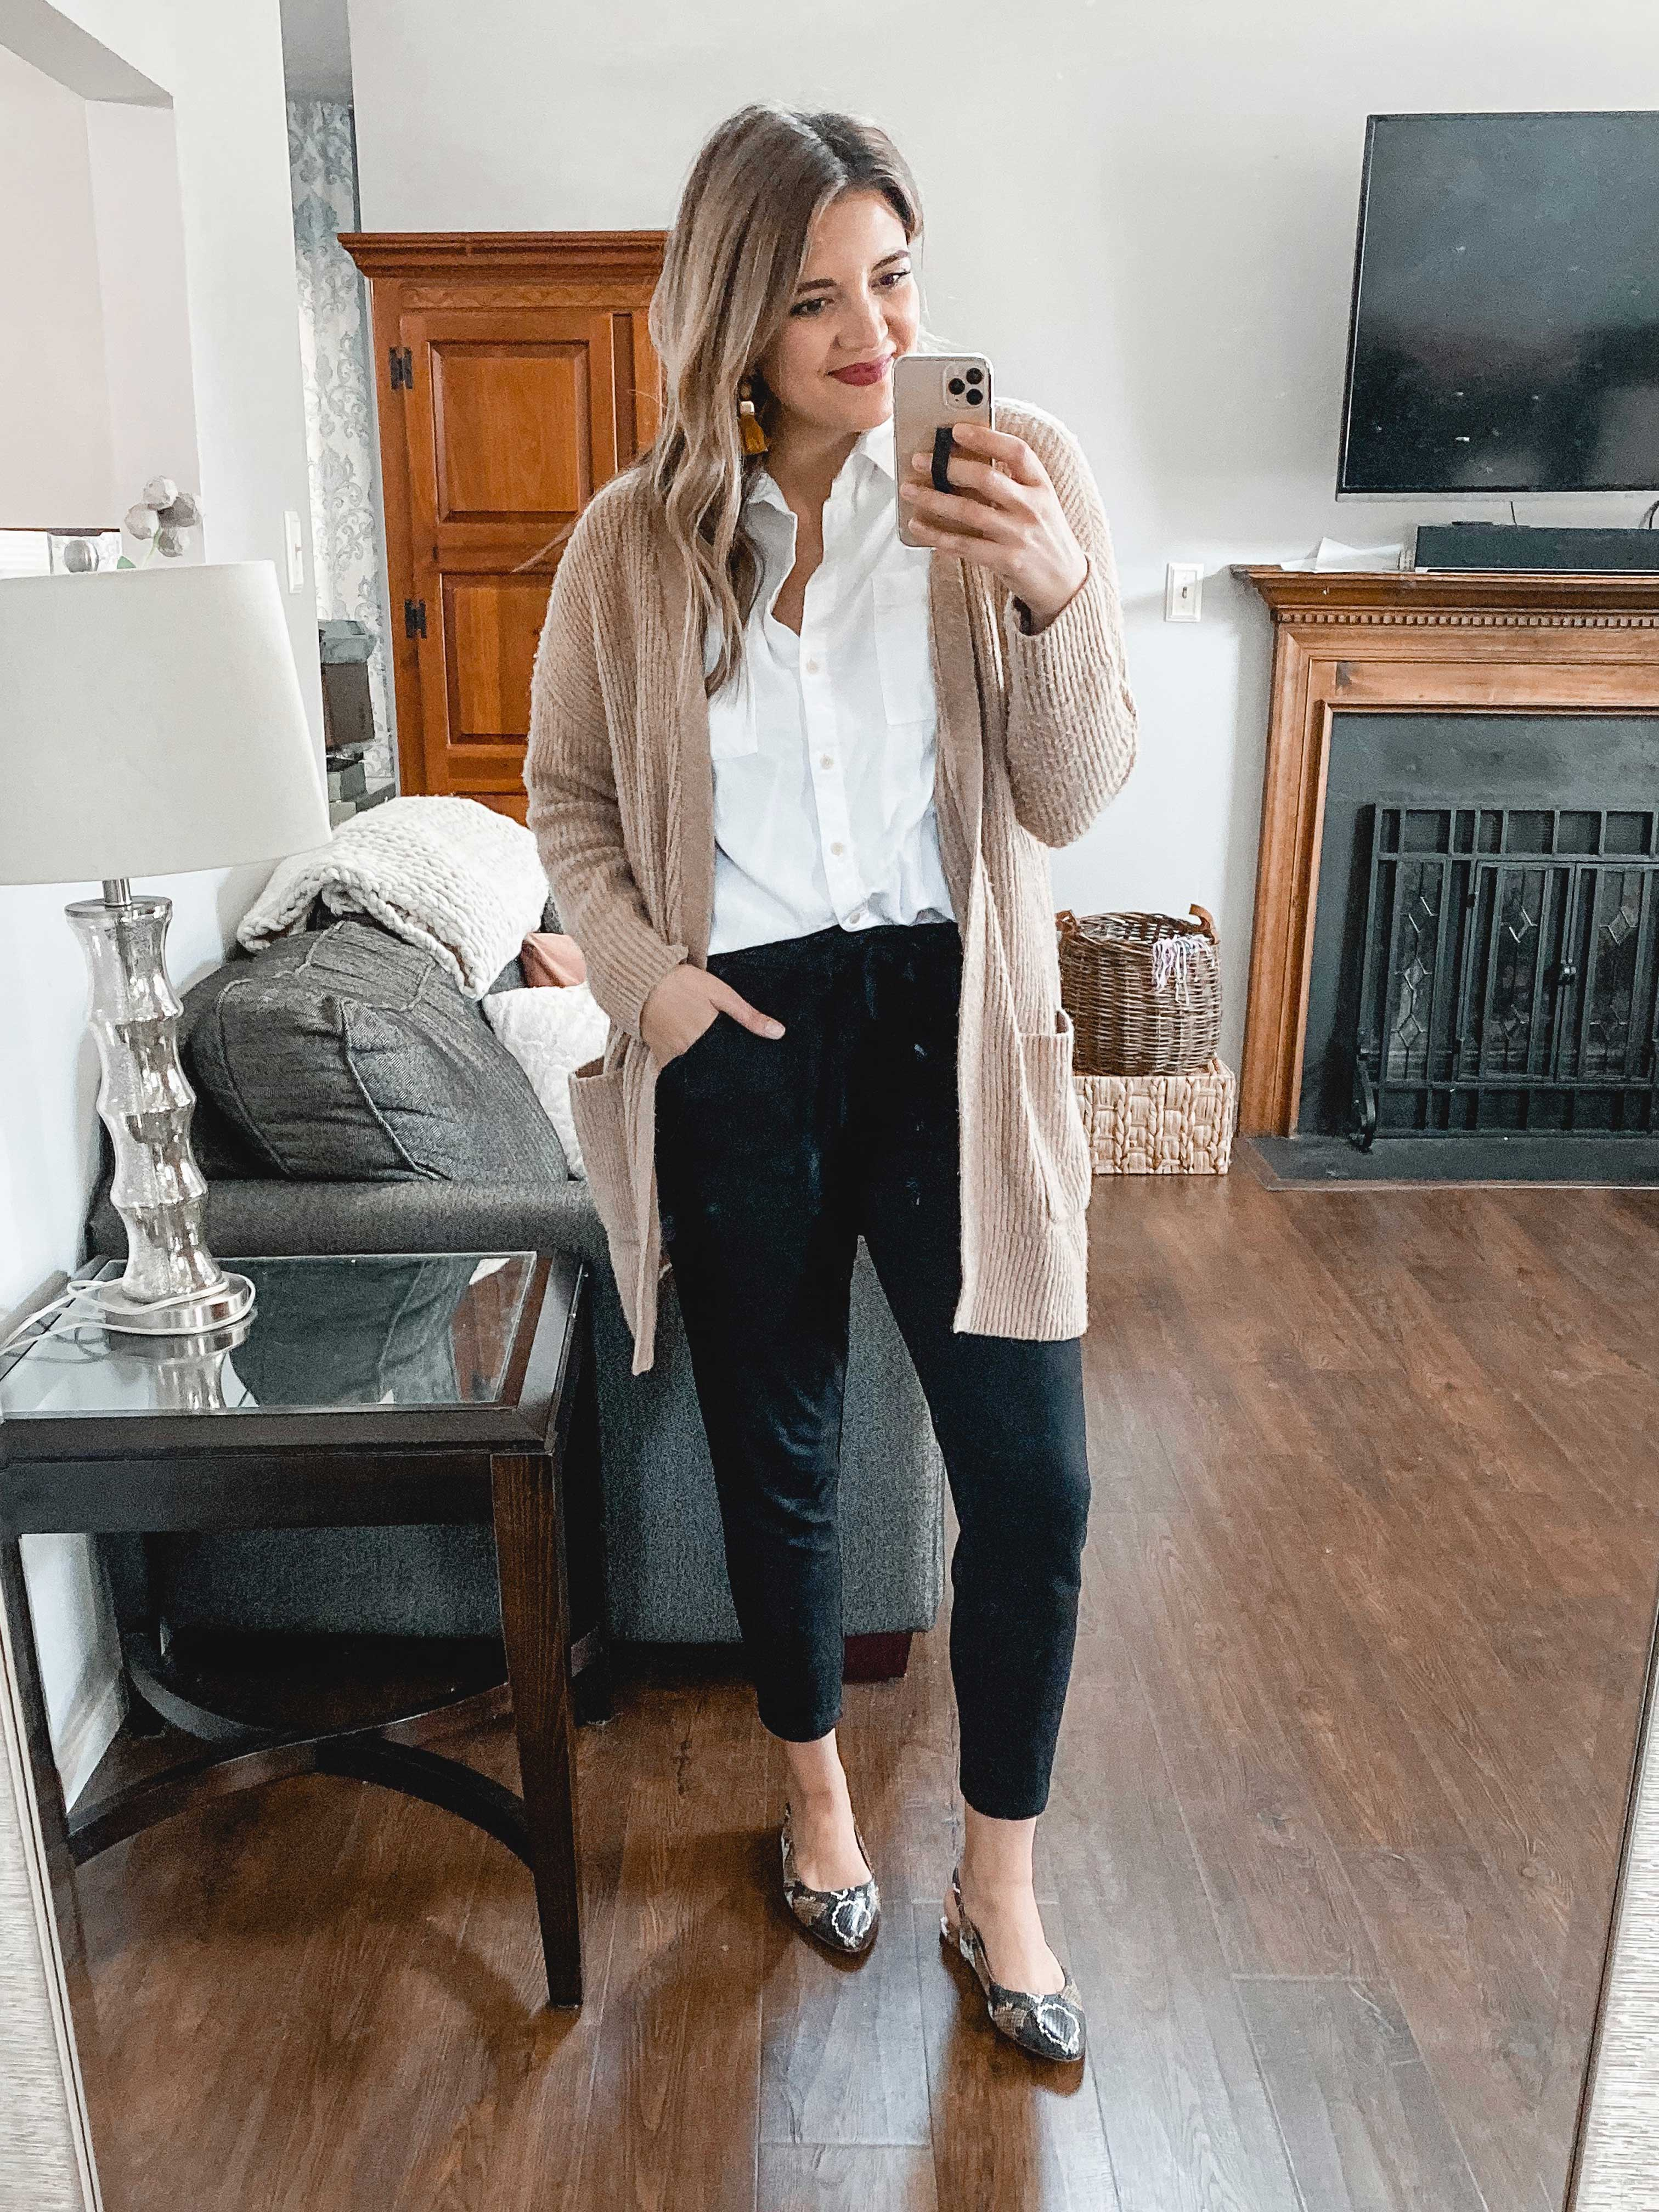 Virginia blogger, Lauren Dix, shares six jogger pants outfits for winter and fall! See all the ways to wear joggers dressed up or down!